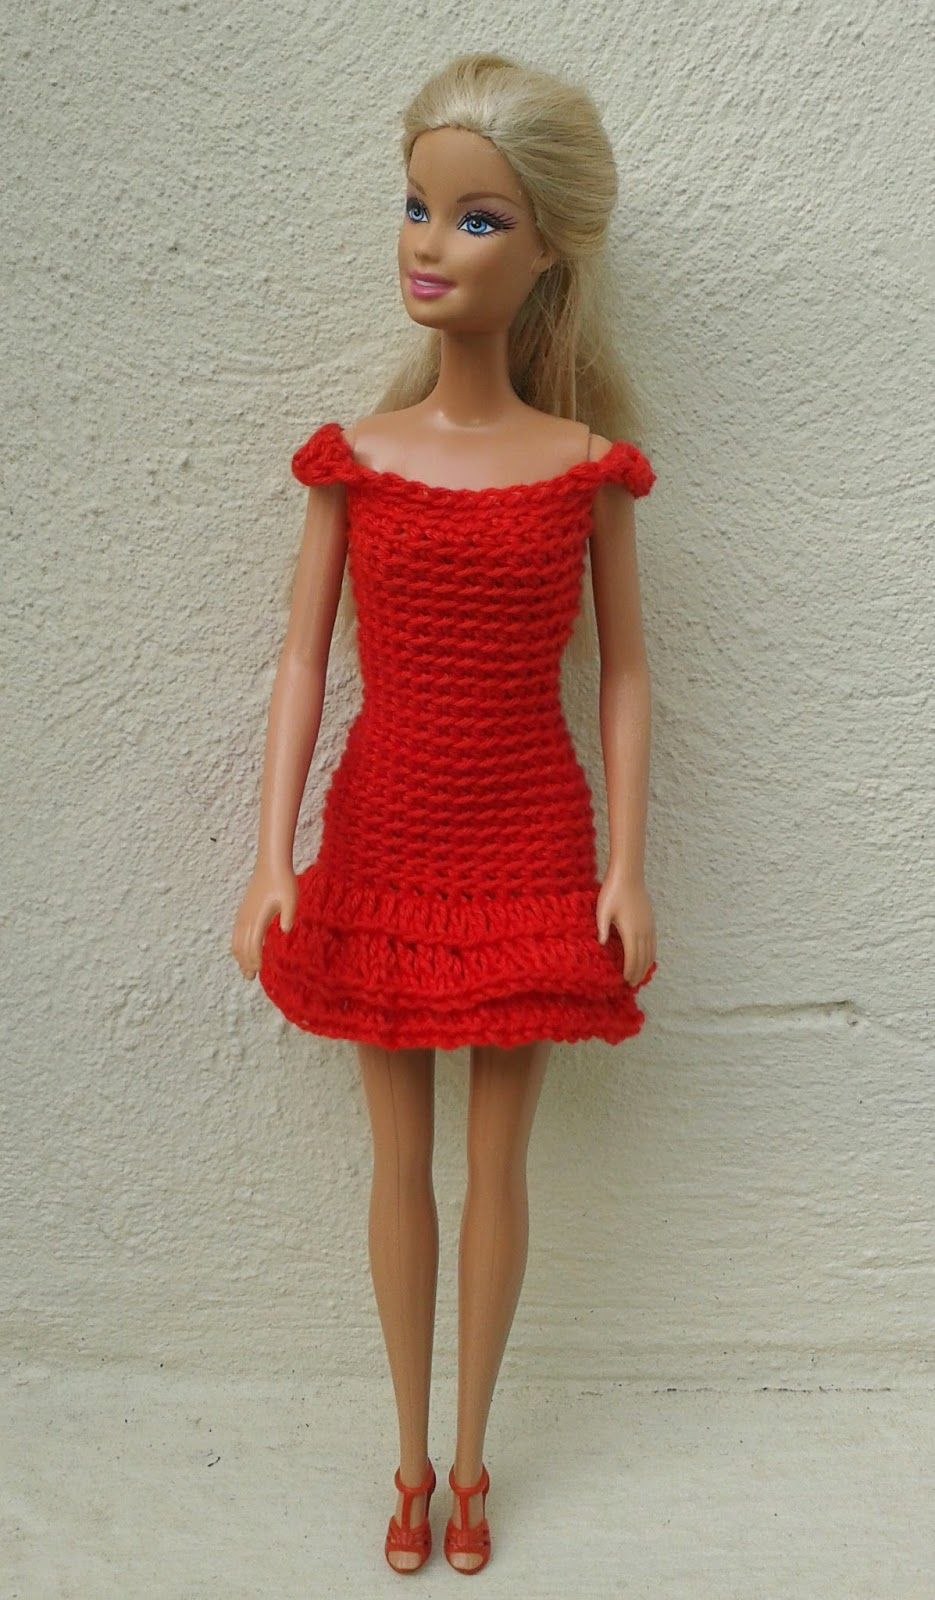 Lyns dolls clothes barbie in red crochet dresses barbie ravelry barbie in red crochet dresses pattern by linda mary bankloansurffo Image collections